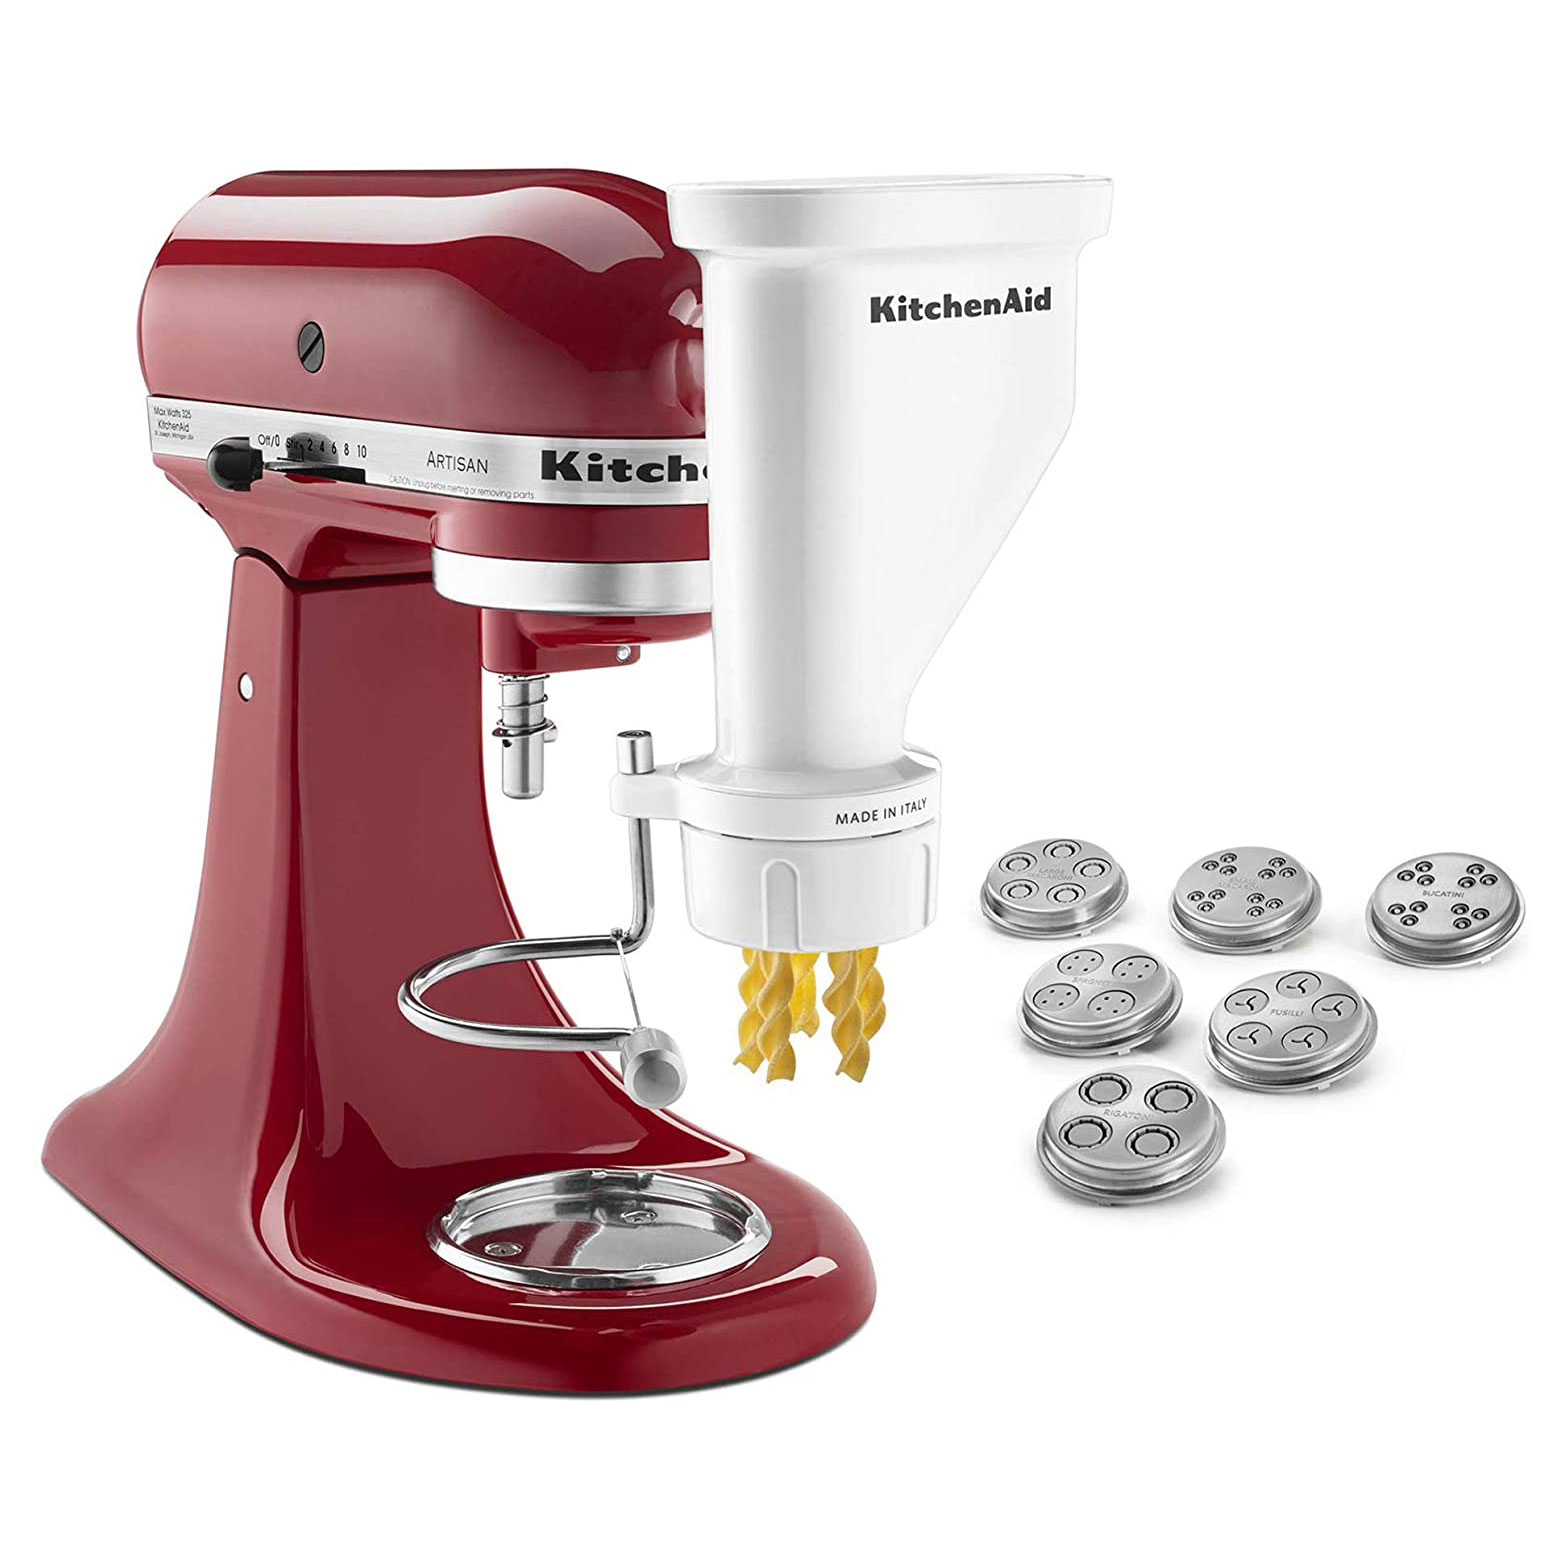 KitchenAid red mixer with pasta attachments